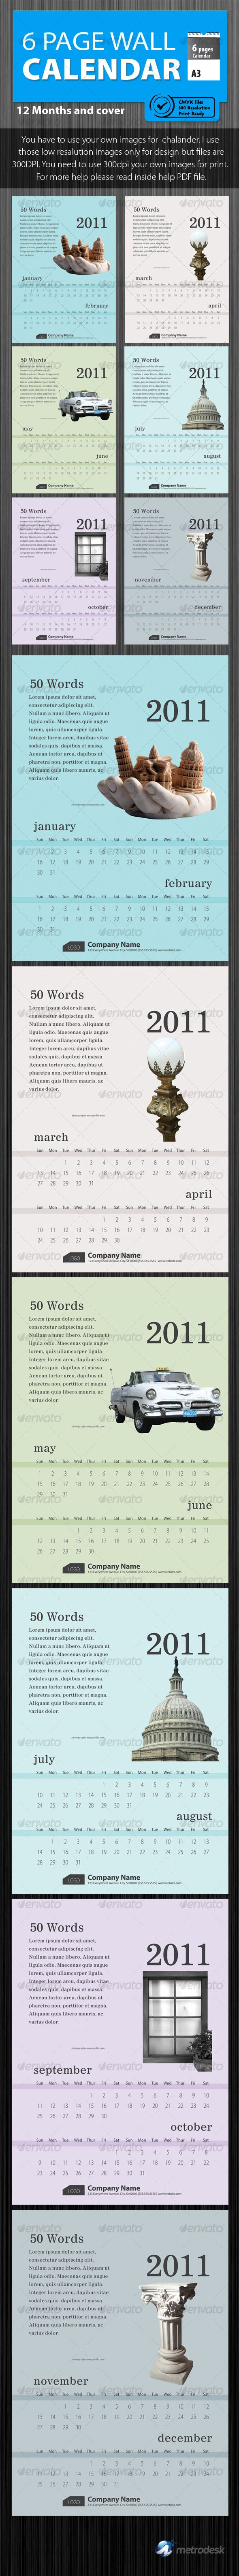 Pin by Best Graphic Design on Calendar Templates